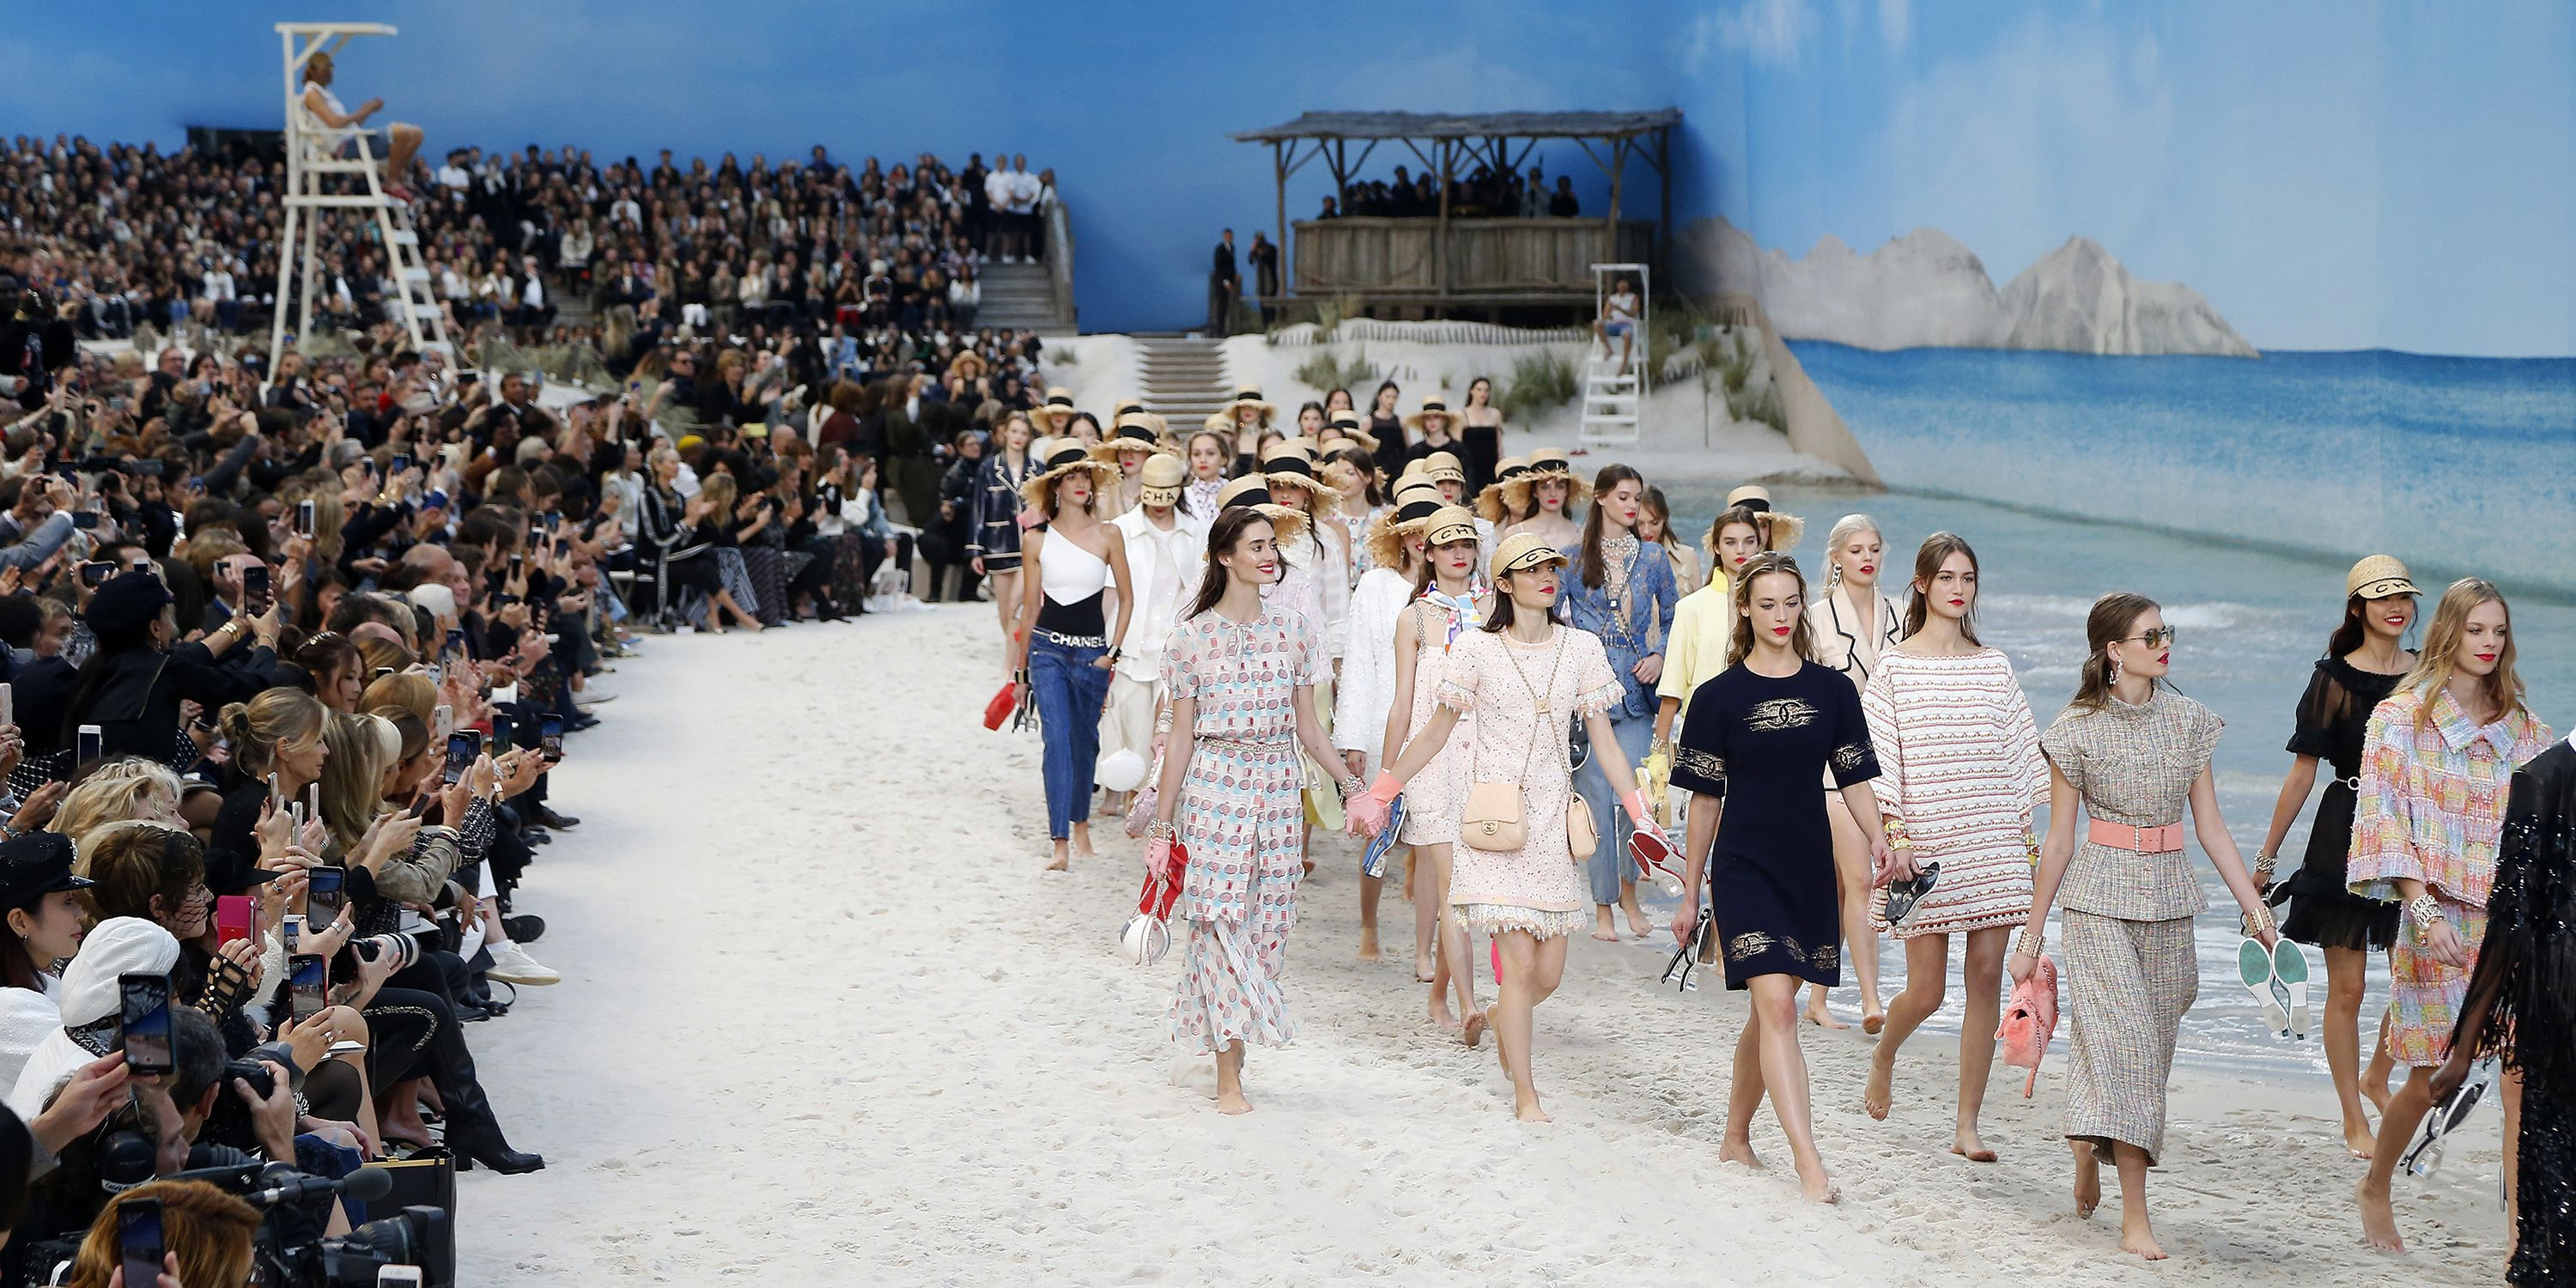 80bdecf0 Chanel's Spring 2019 Runway Was a Beach With an Ocean and Lifeguard ...